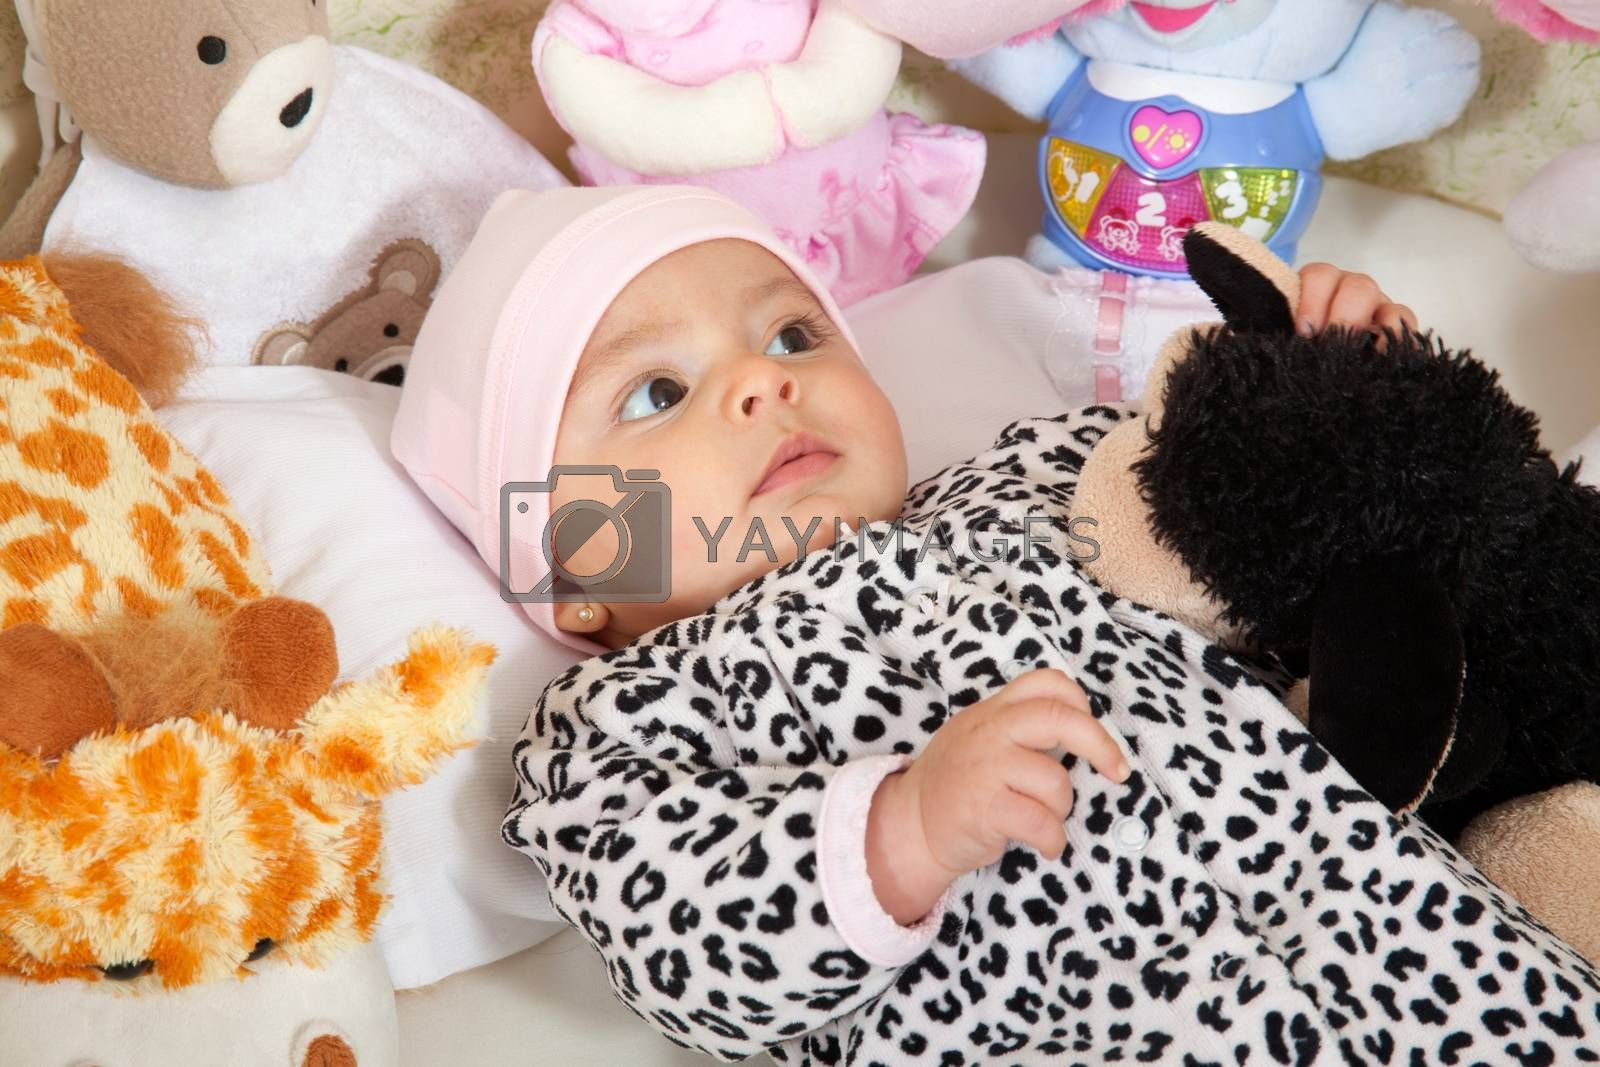 A baby girl dressed in animal print surrounded by stuffed animals